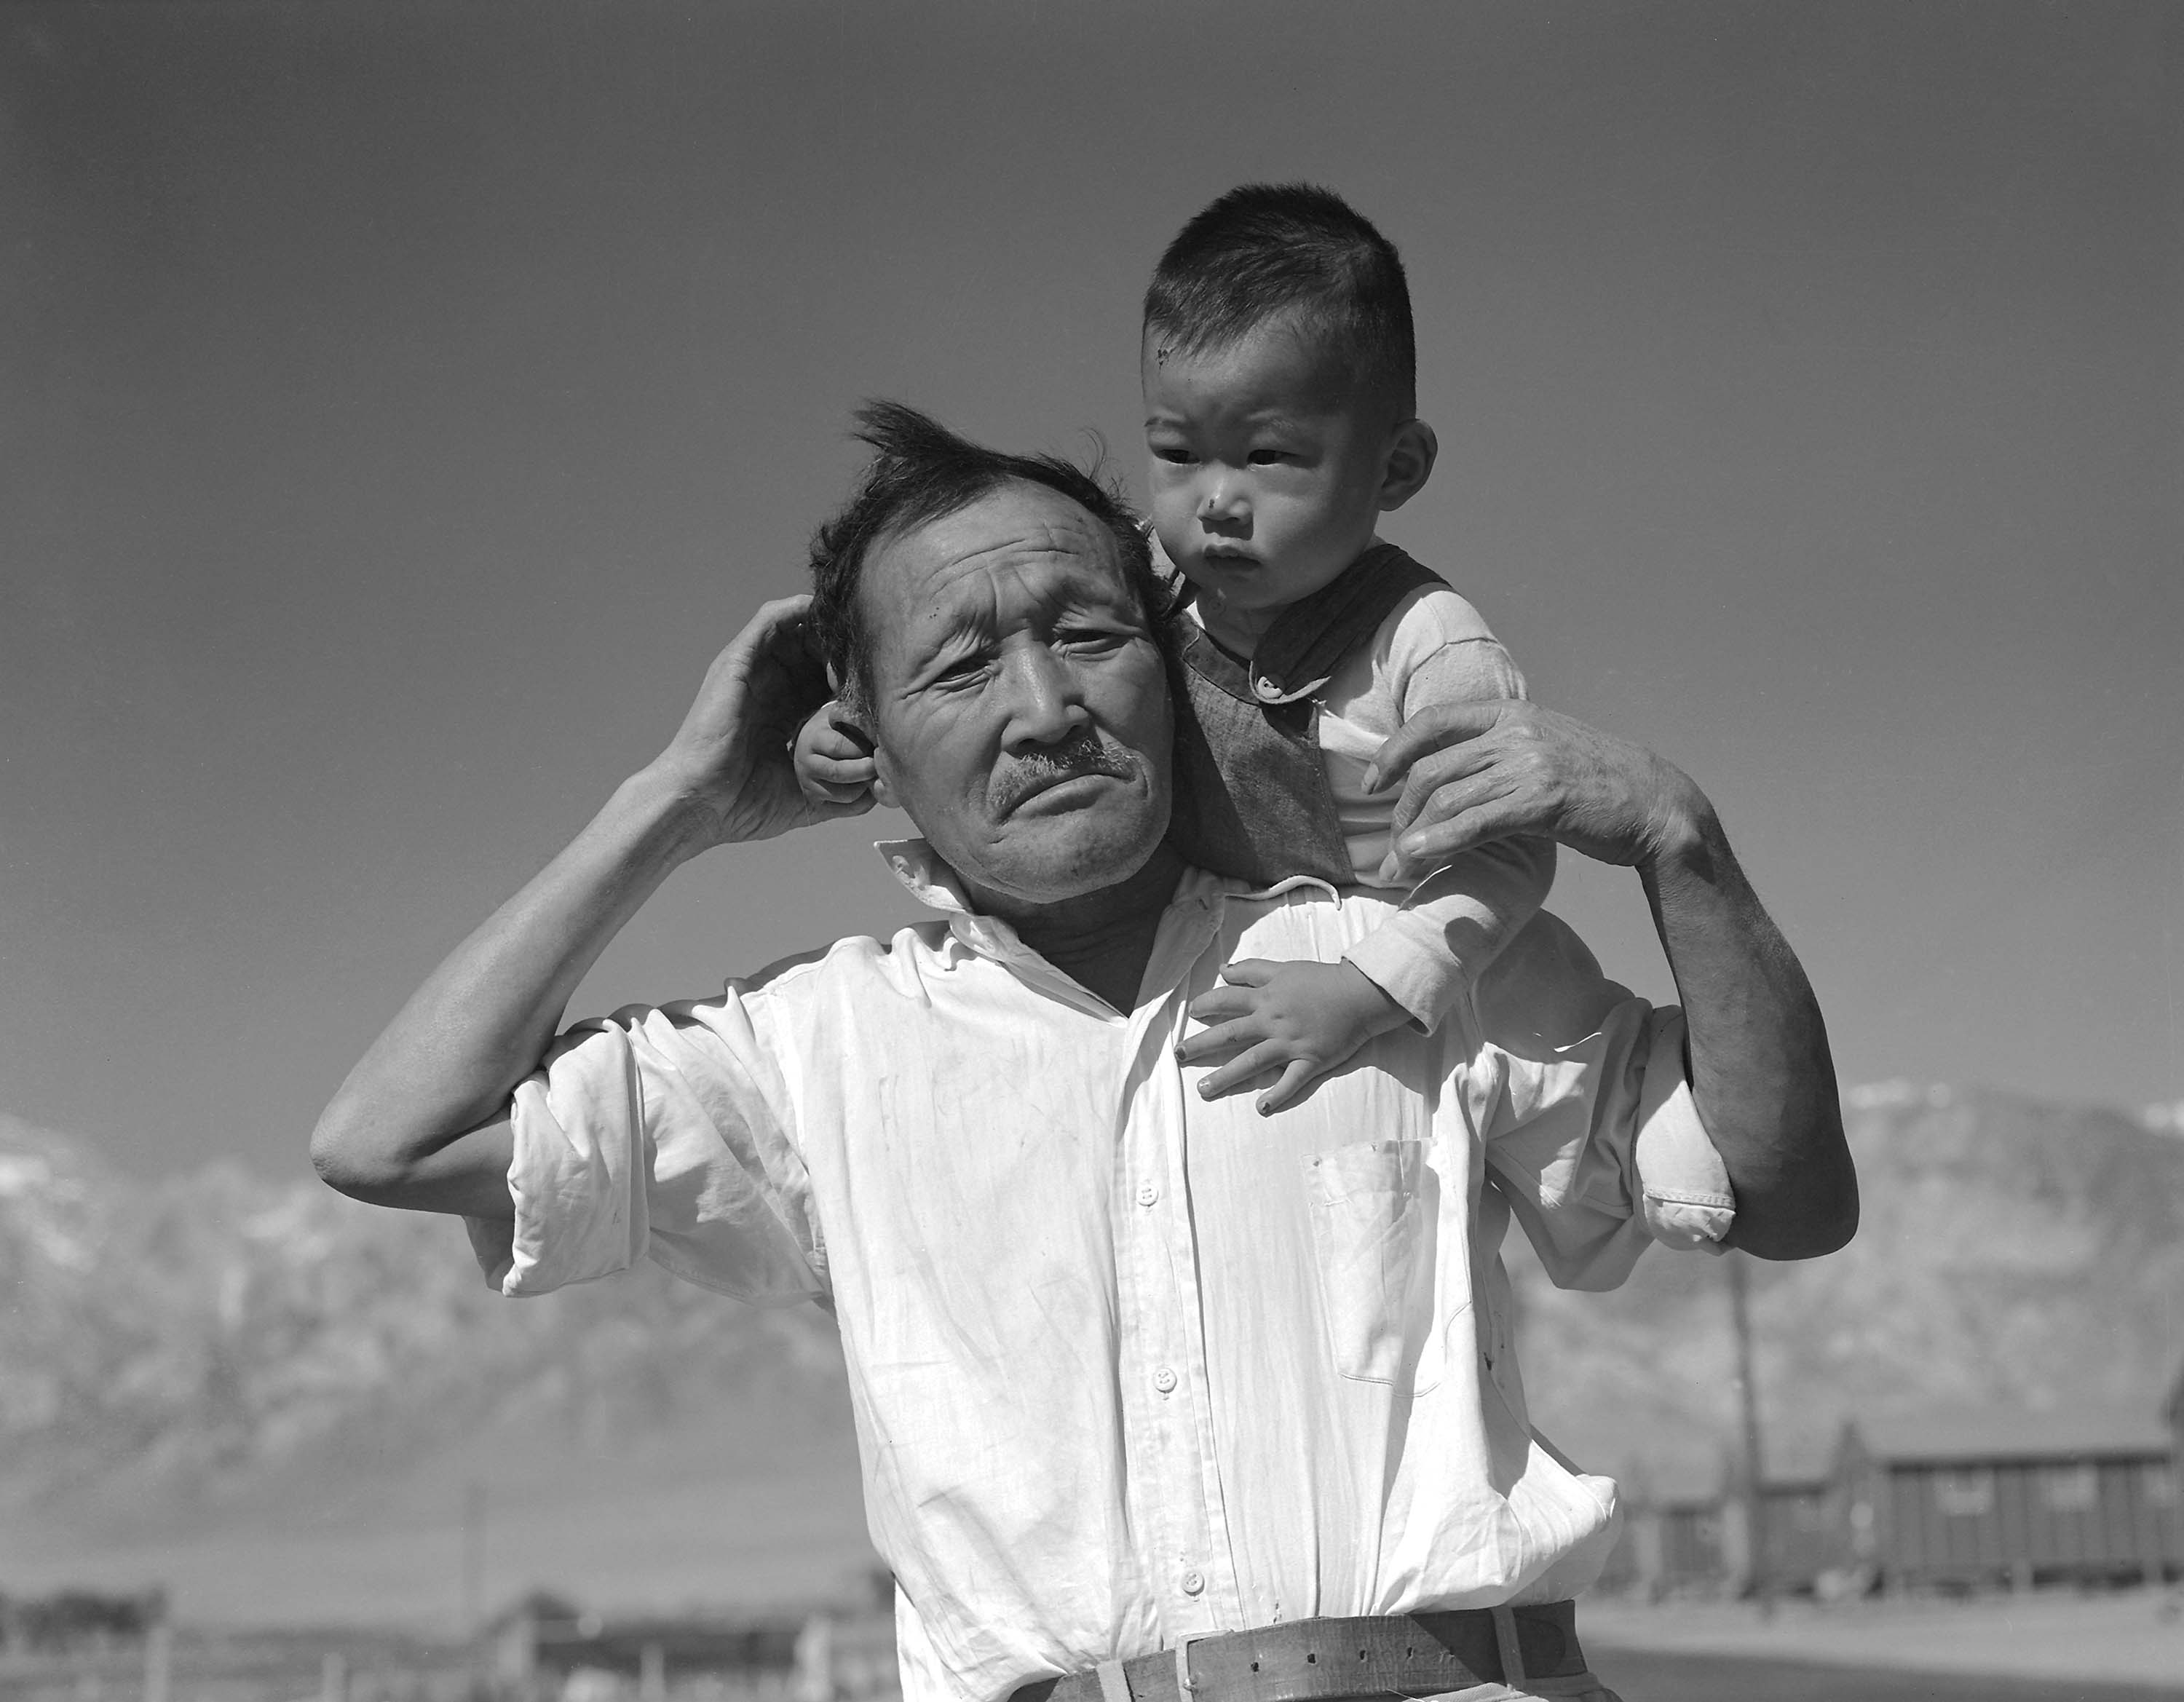 http://www.archives.gov/press/press-kits/picturing-the-century-photos/manzanar-relocation-center.jpg